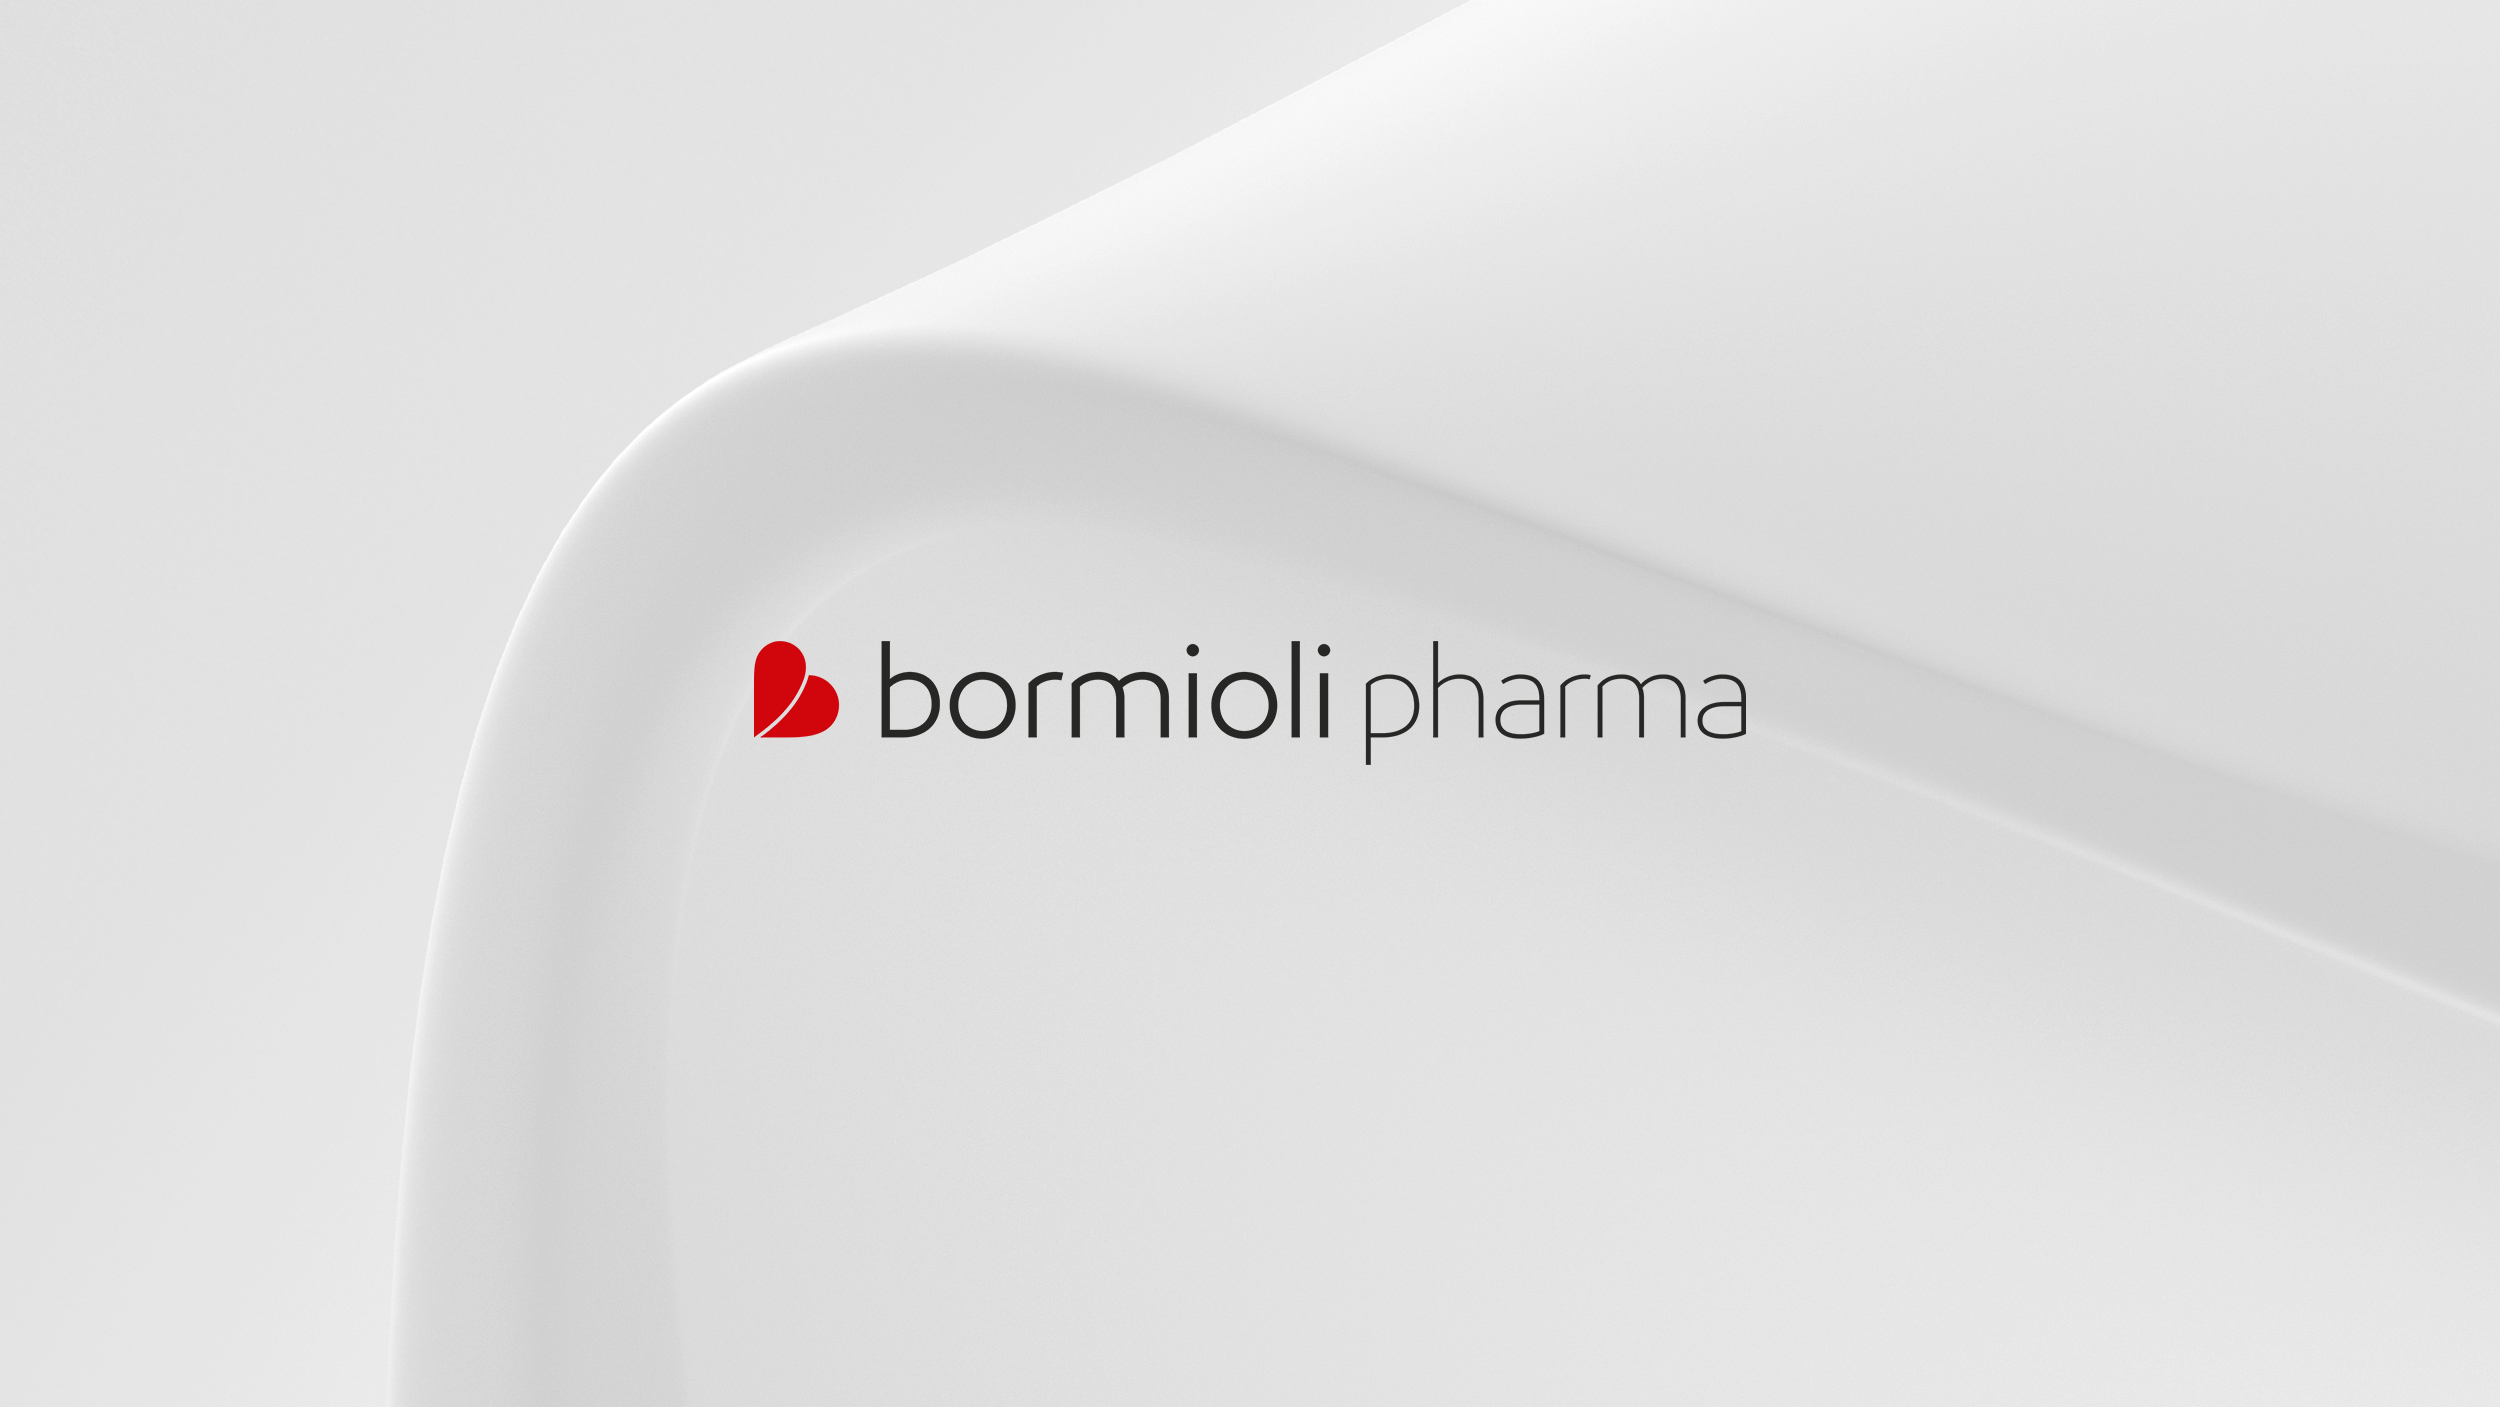 Bormioli background white.jpg